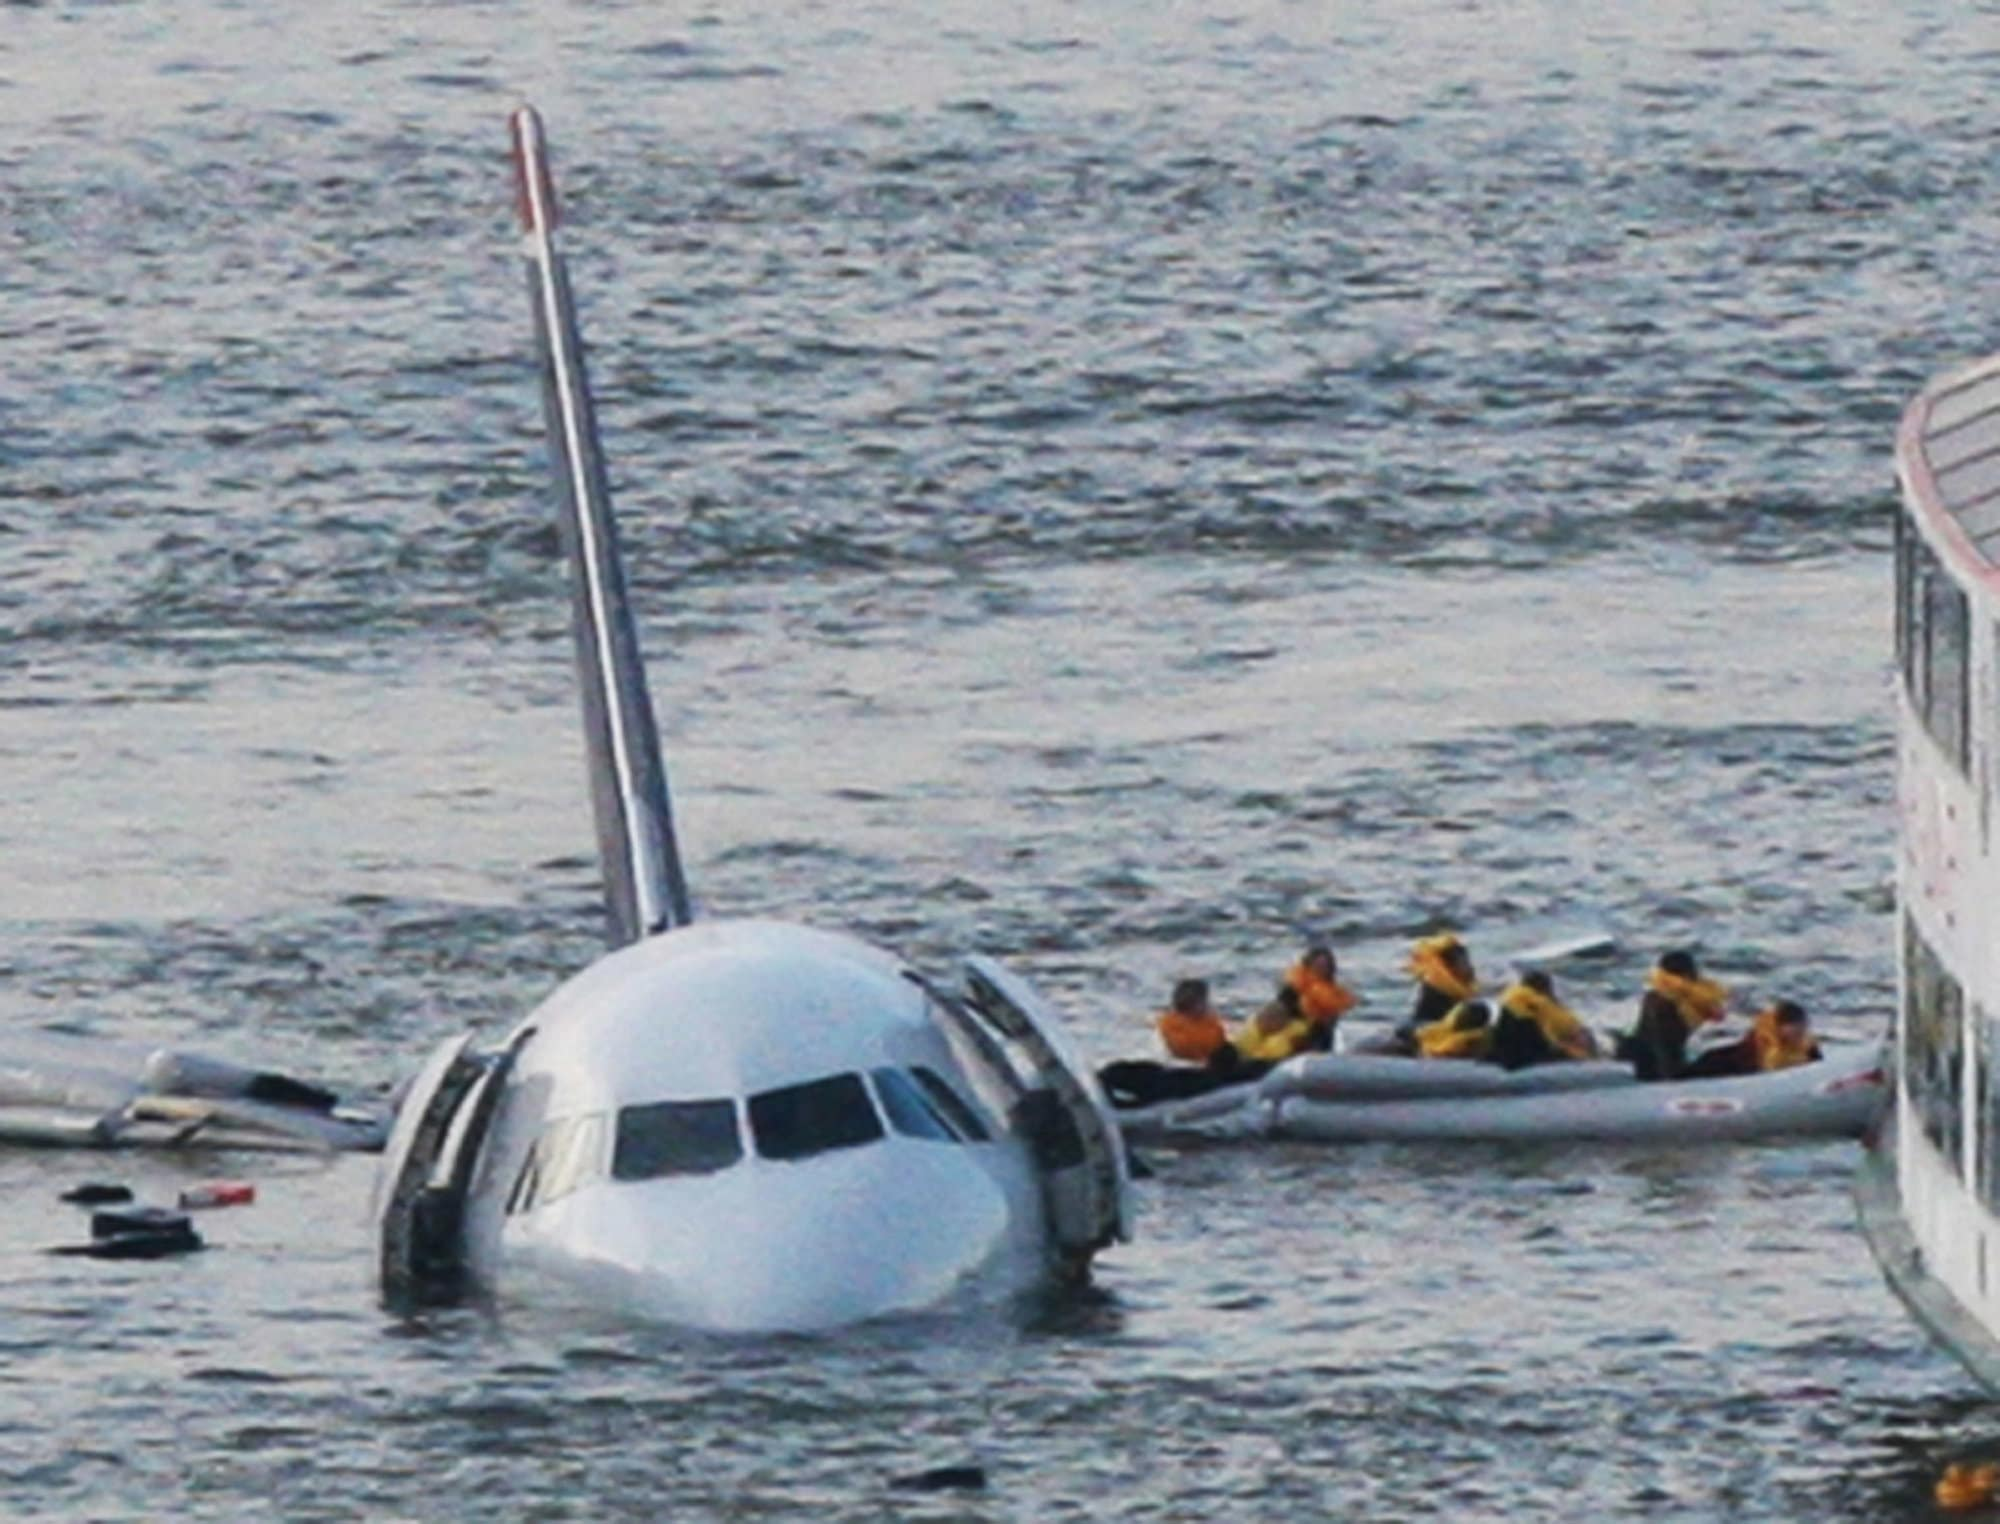 FILE - In this Jan. 15, 2009 file photo, passengers in an inflatable raft move away from US Airways Flight 1549 that went down in the Hudson River in New York. The jet ditched in the Hudson River after both engines failed when they ingested birds shortly after takeoff. All 155 people on board were safe; Captain Chesley Sullenberger and other crew members were hailed as heroes. (AP Photo/Bebeto Matthews, File)